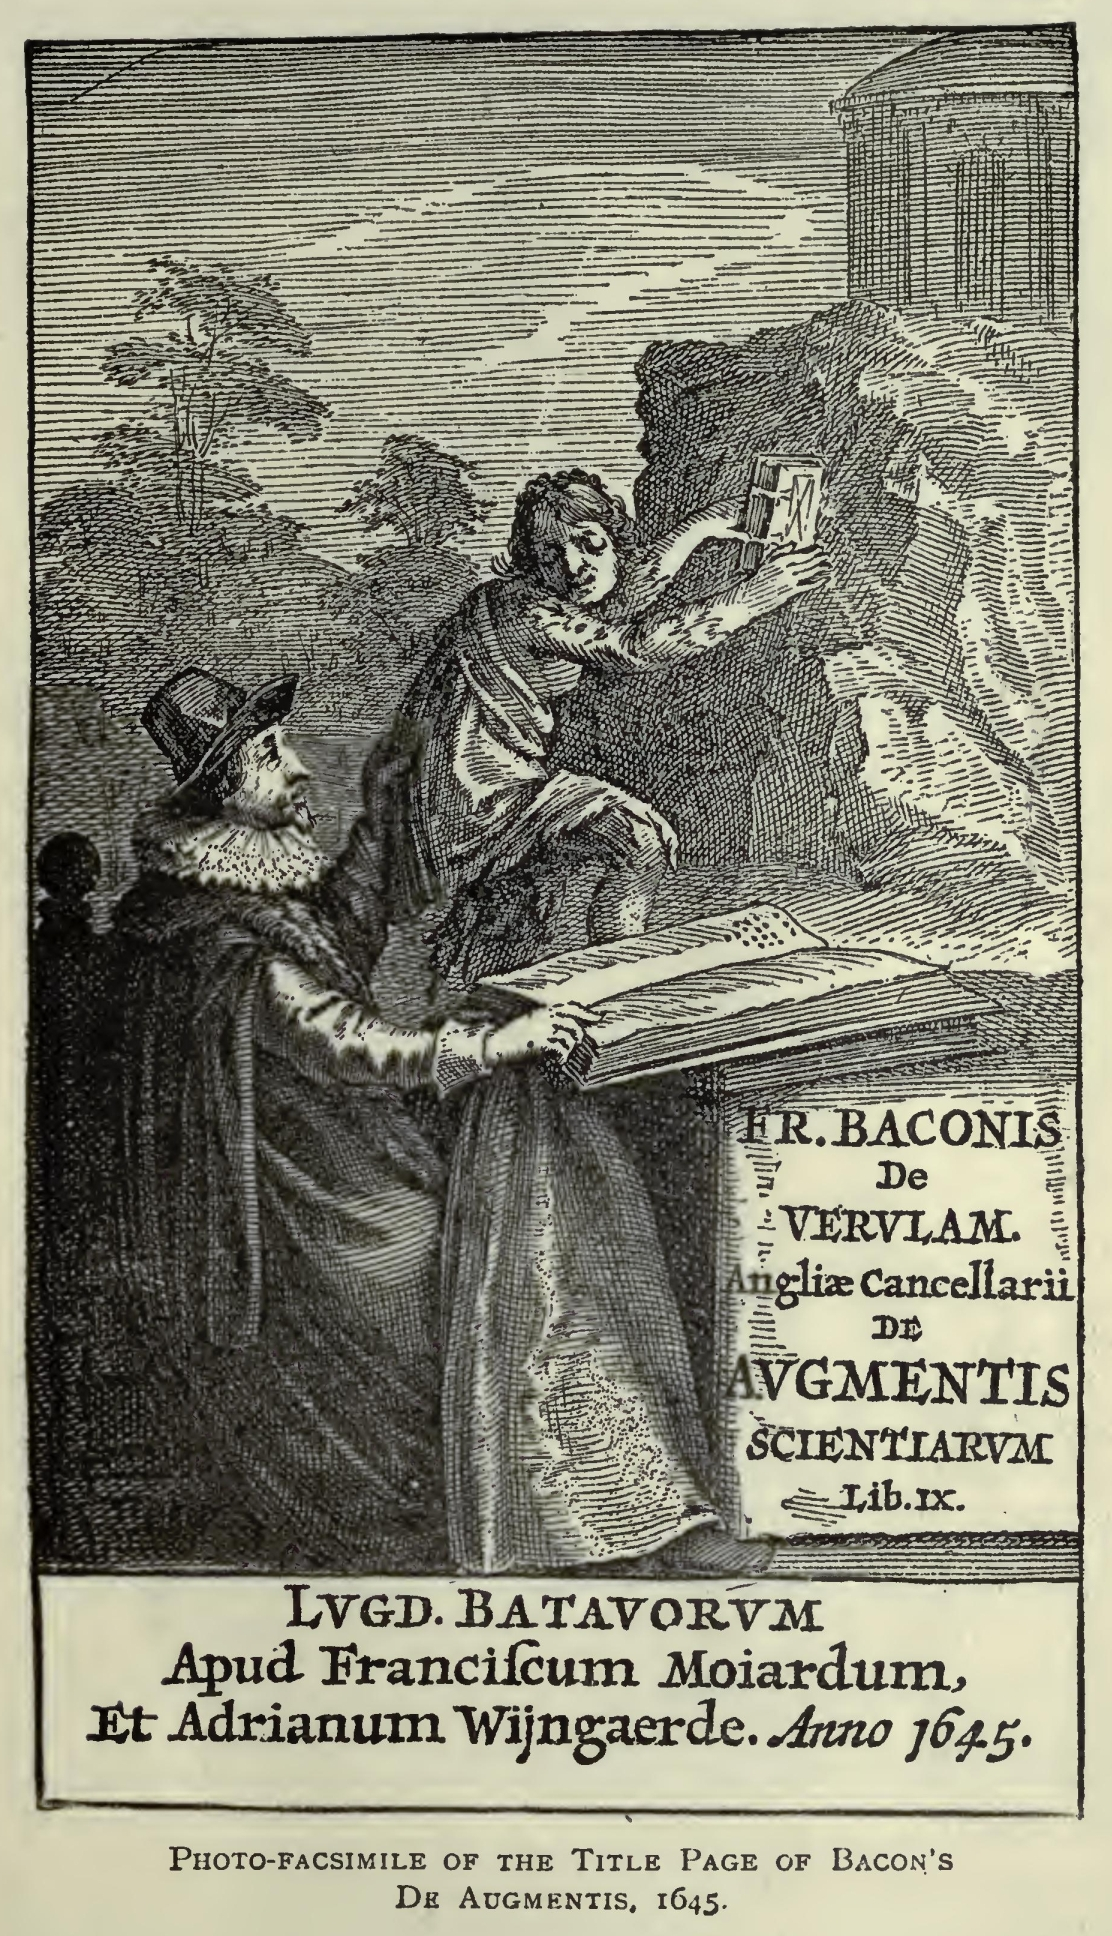 illustration by edwin durning lawrence having very carefully considered this plate of the title page of the de augmentis 1645 let us next examine the plate on page 13 which is the title page